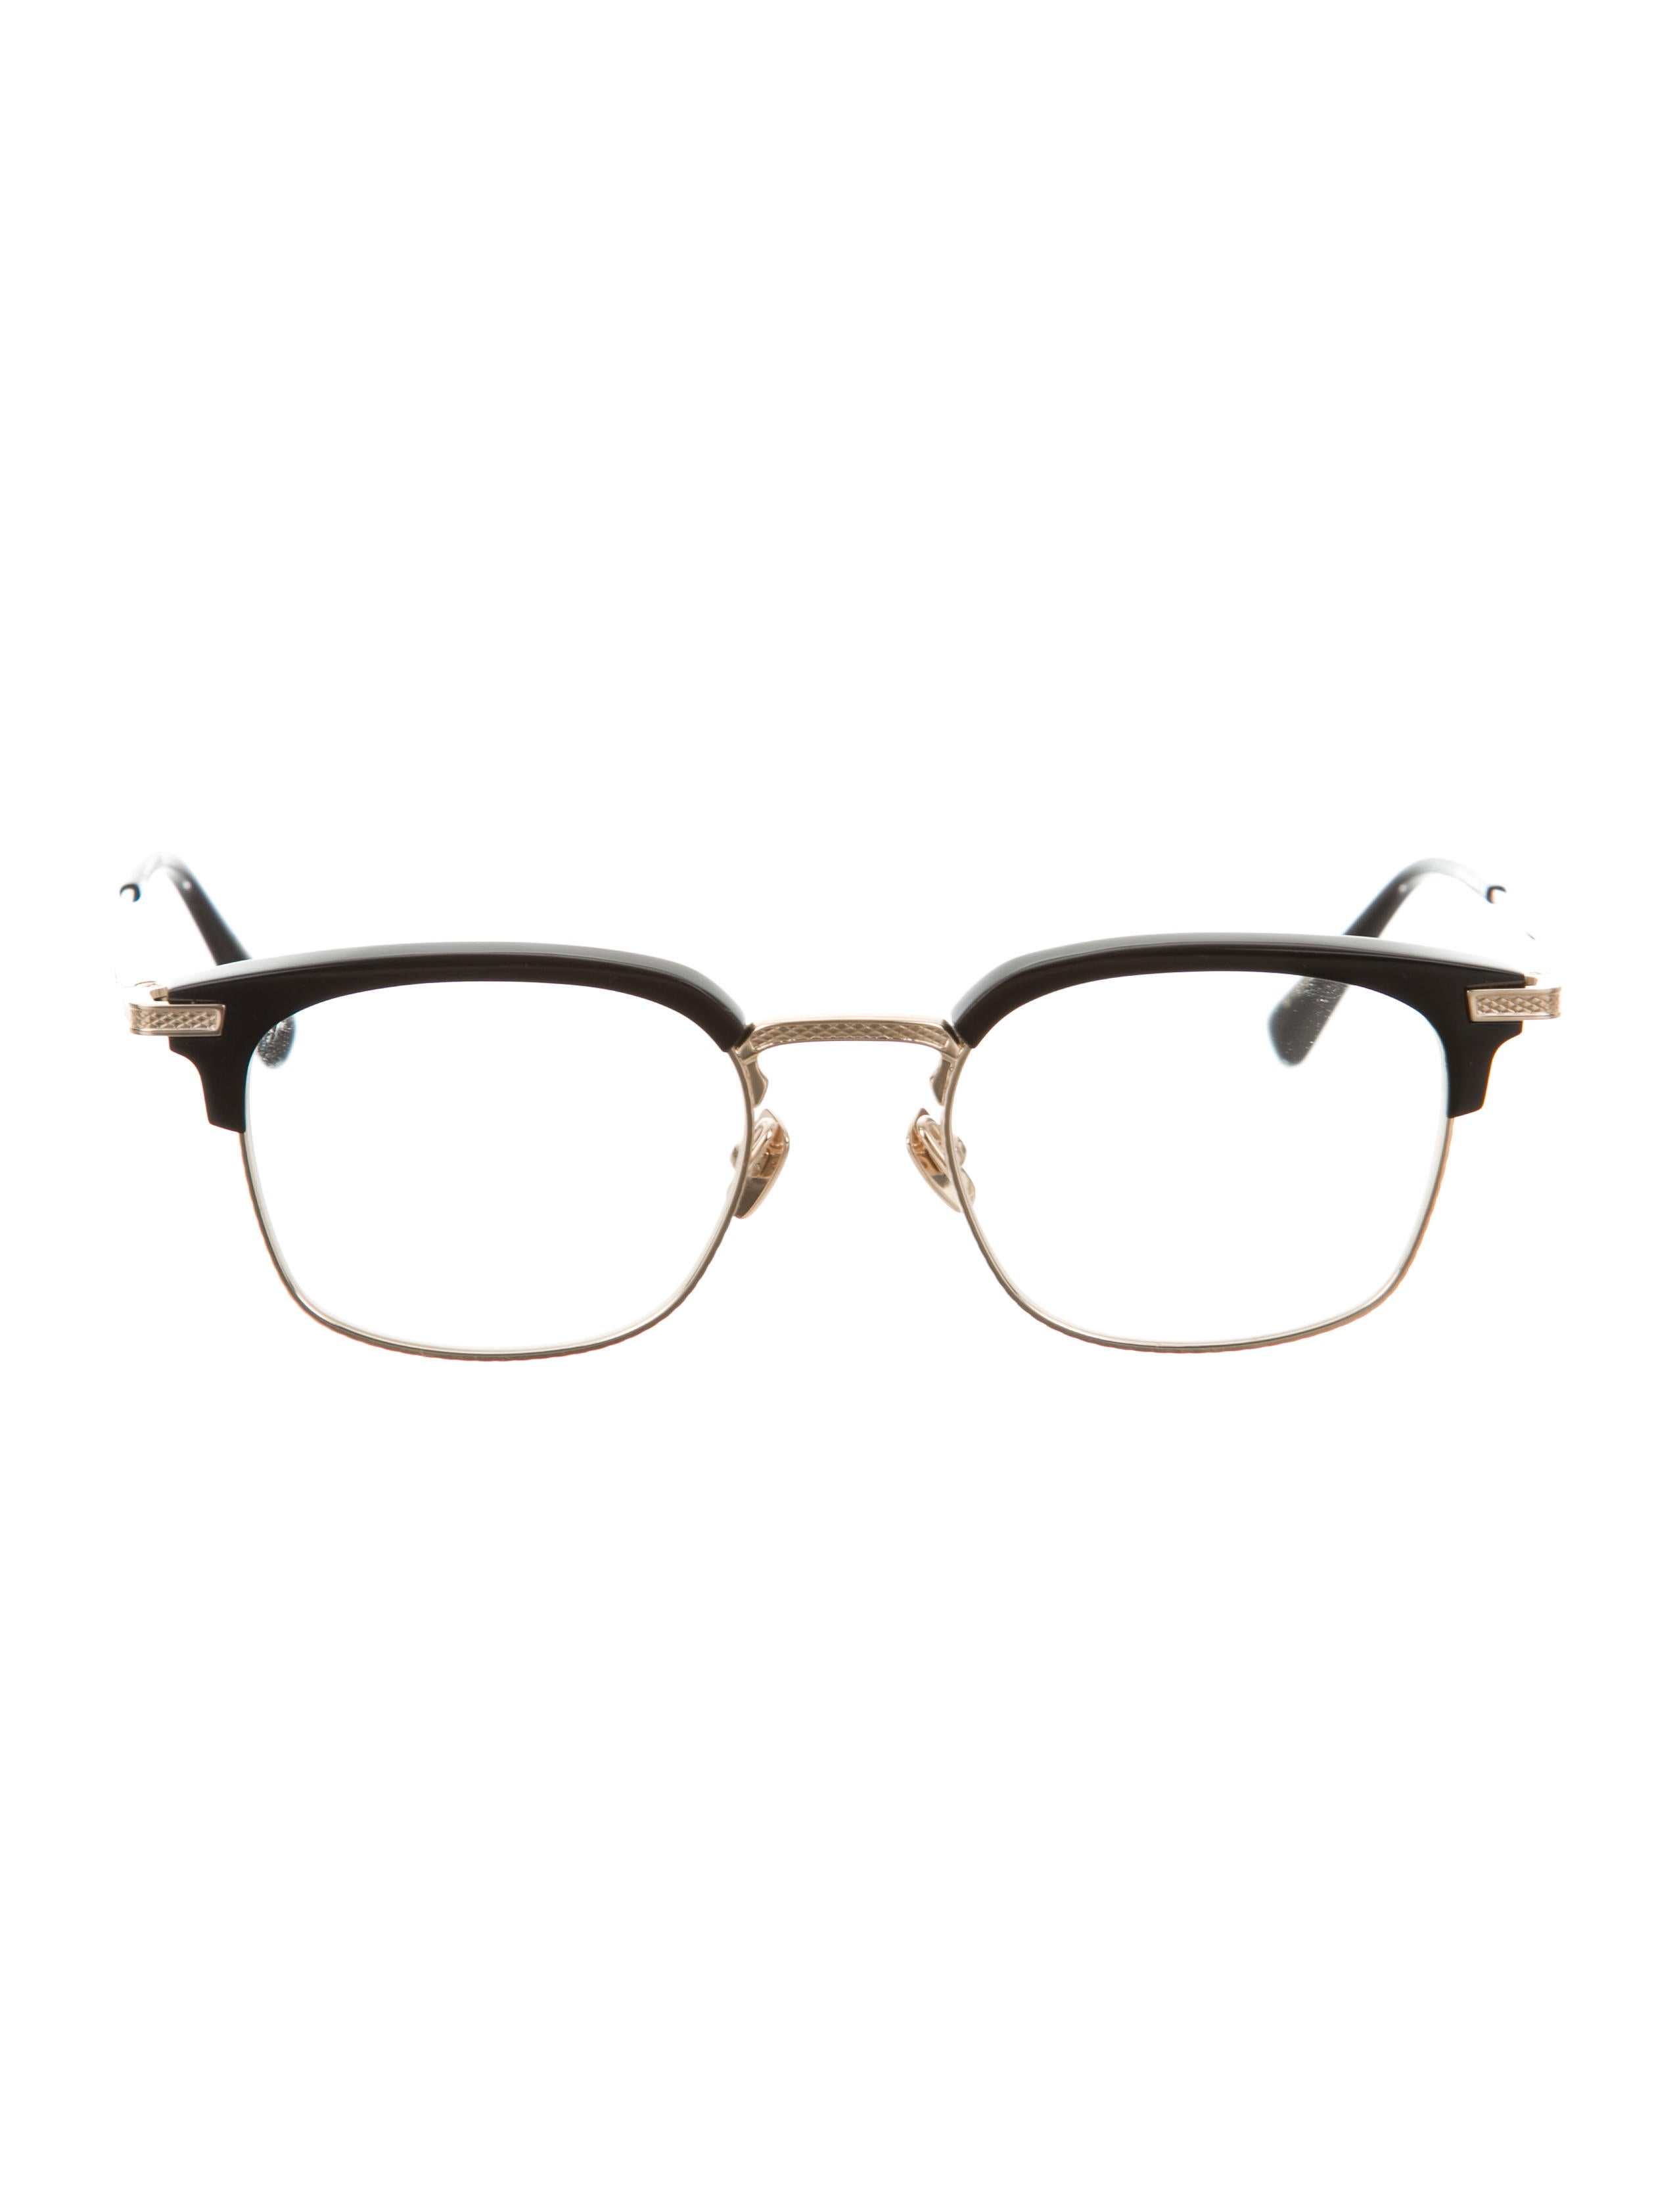 Gold Plated Glasses Frames : Dita Nomad 18K Gold-Plated Eyeglasses - Accessories ...